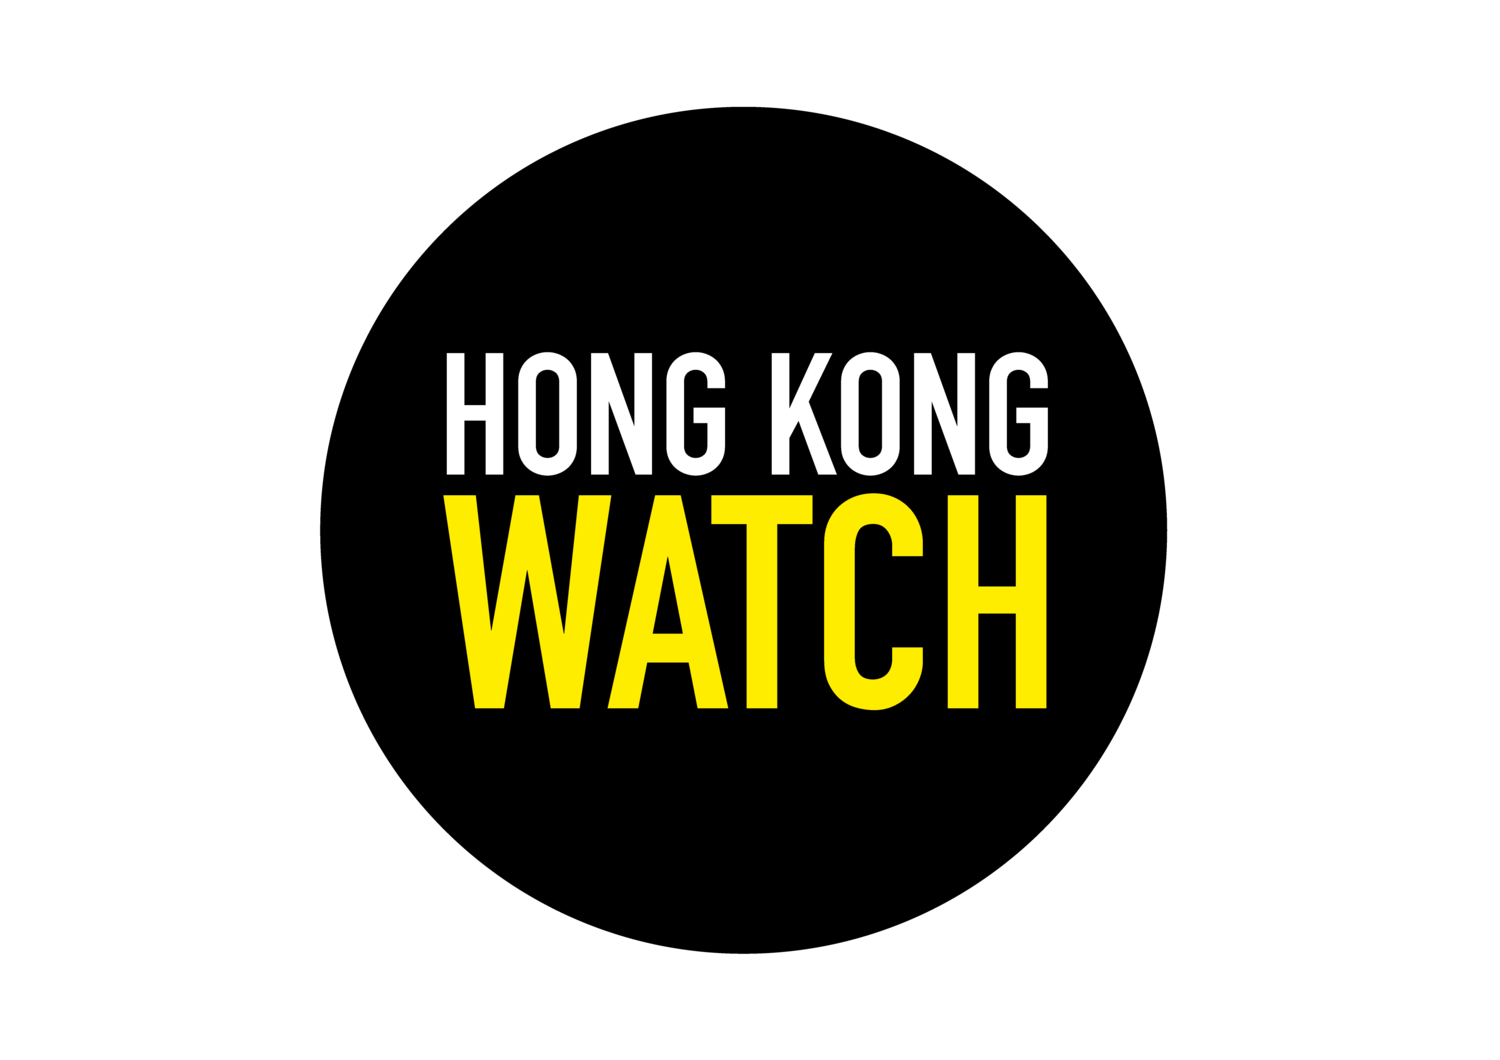 Hong Kong Watch